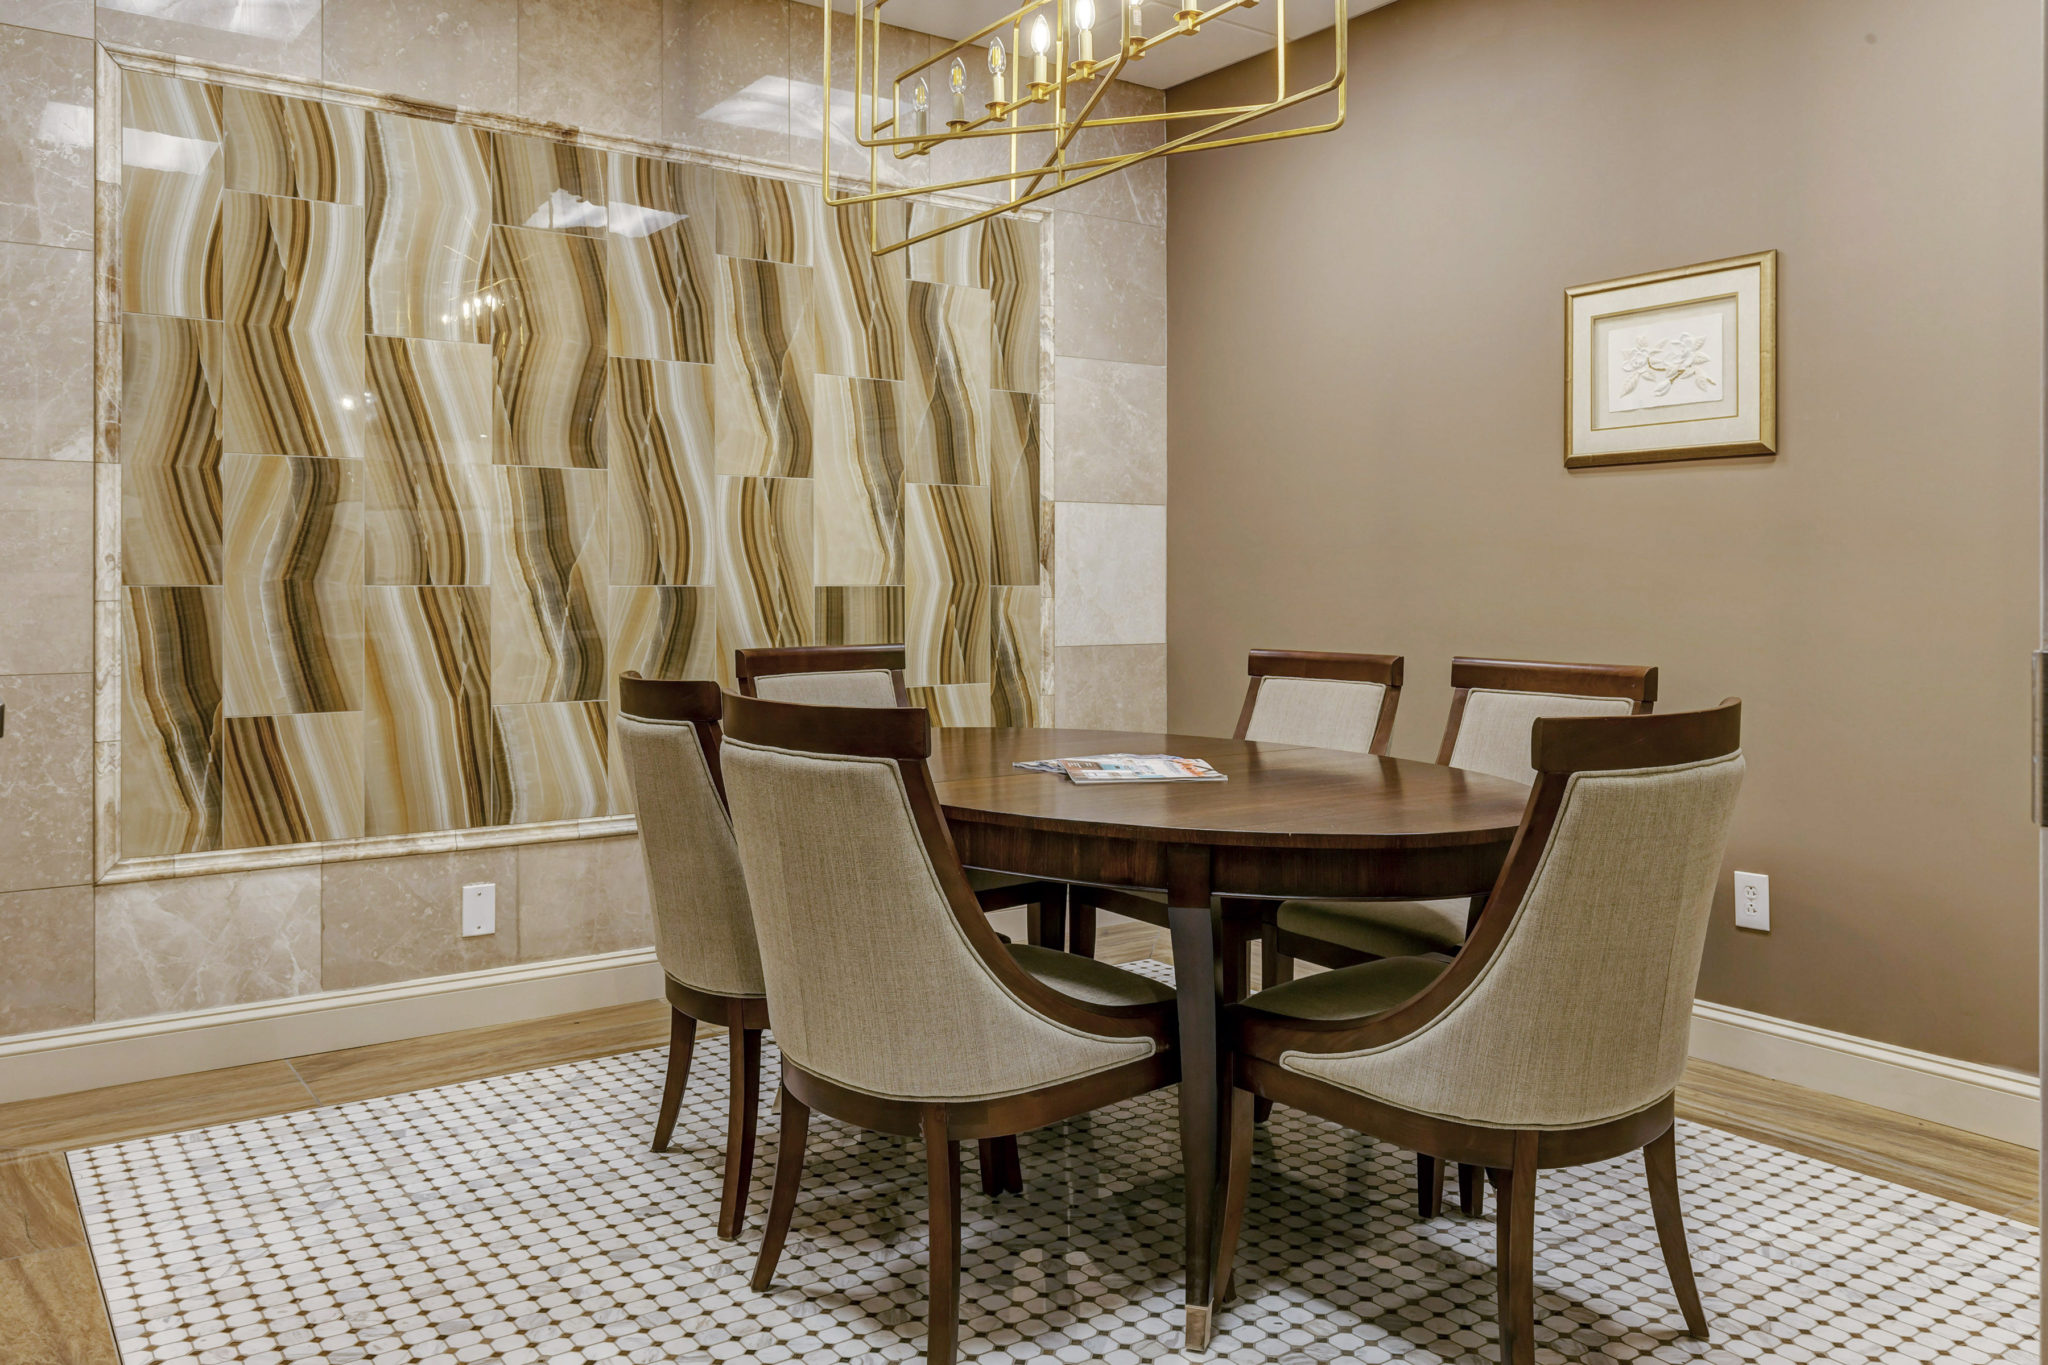 Dining Room Tile Ideas St Louis Tile Showroom Gorgeous Design Ideas And Helpful Staff